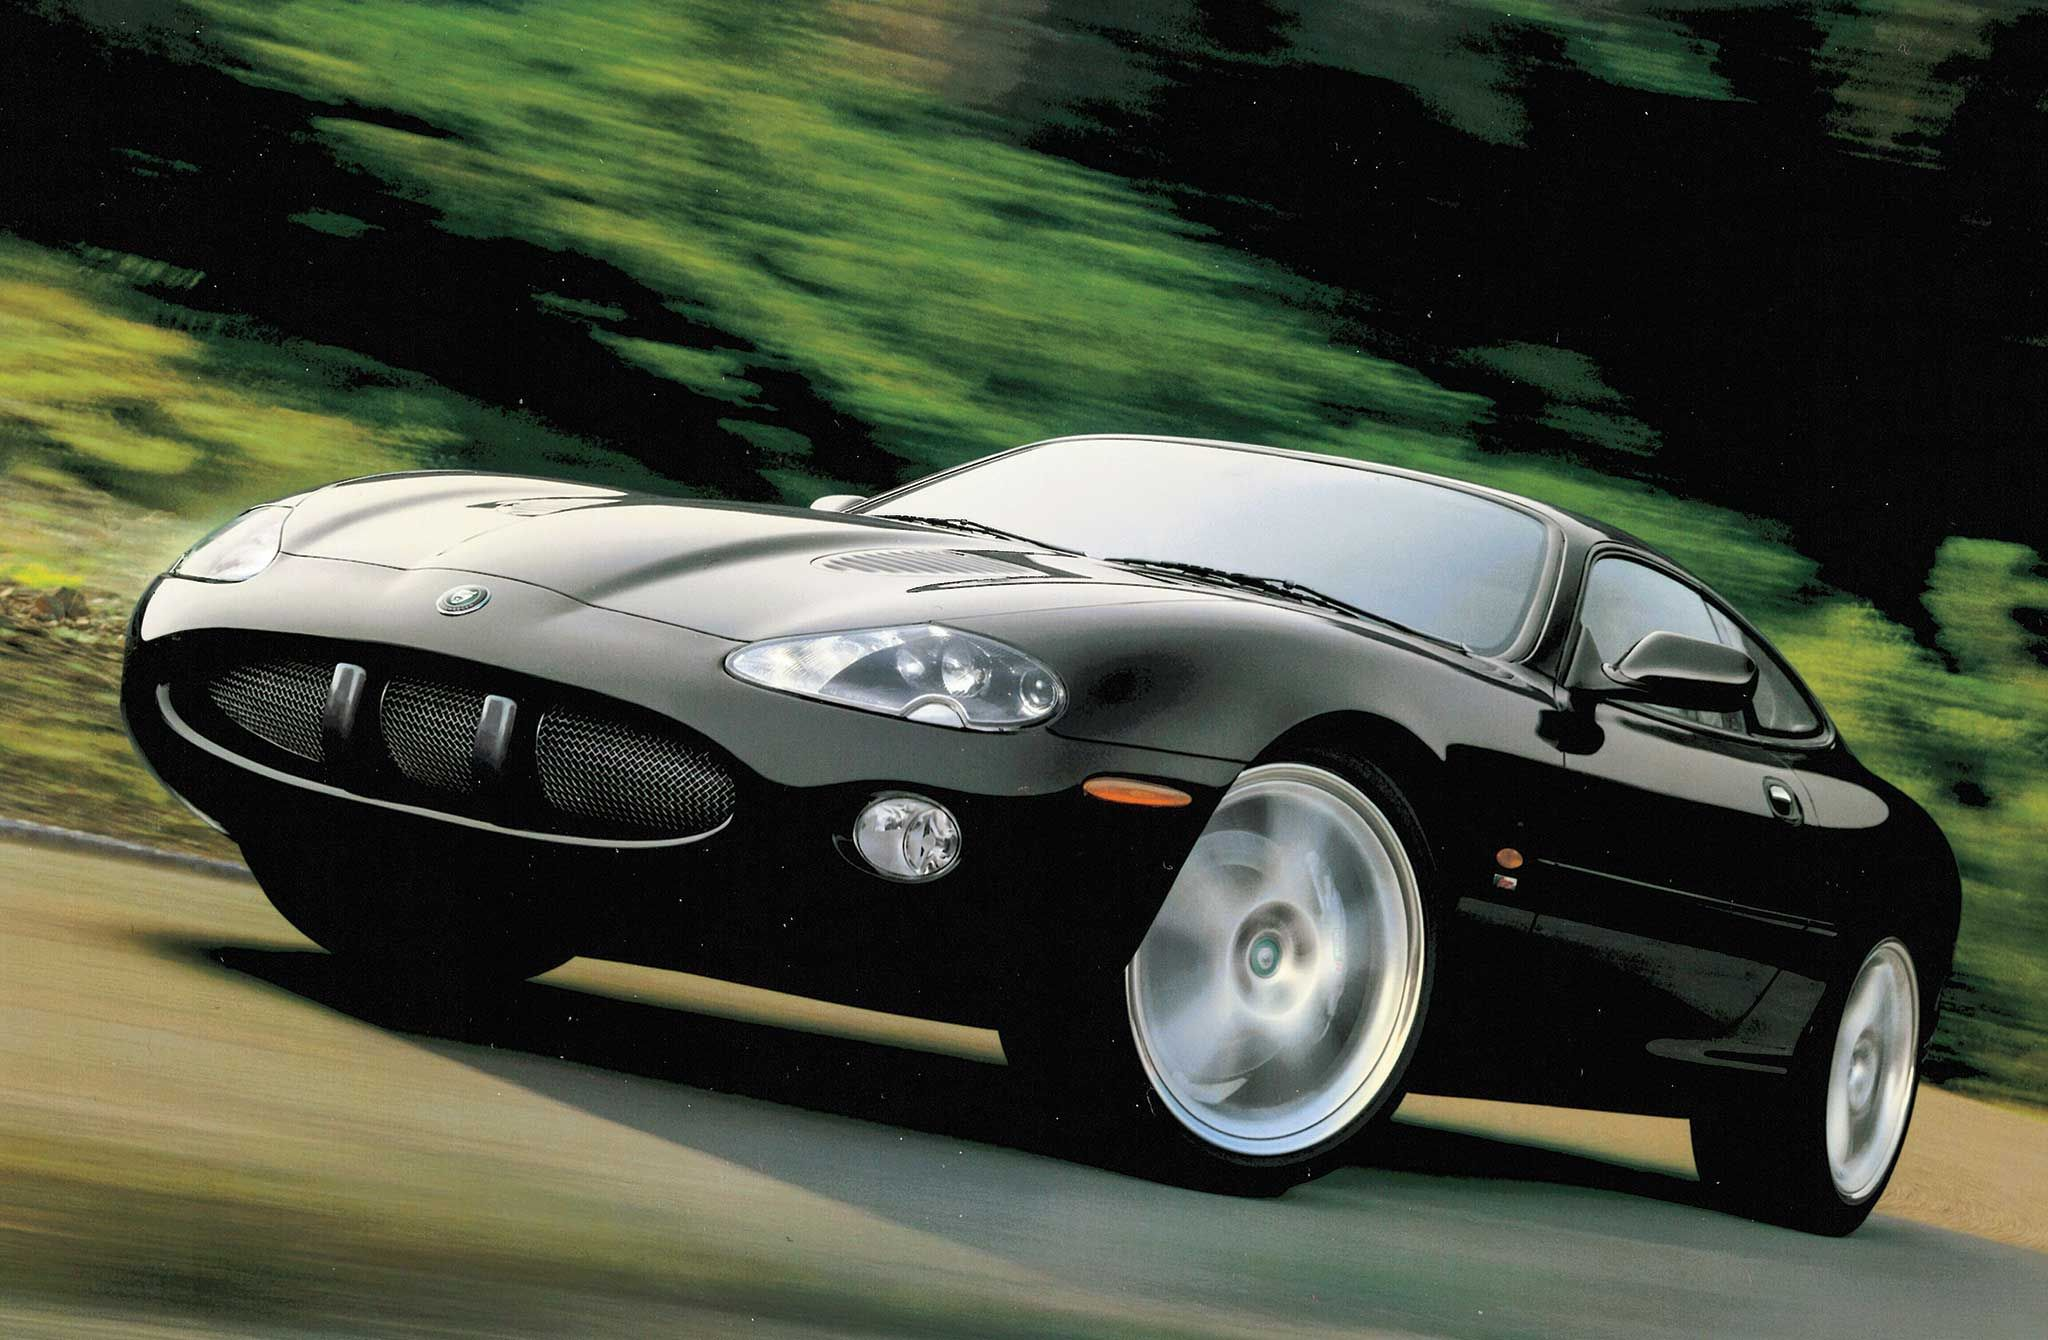 97-06-jaguar-xk8-xkr-driver-side-front-view